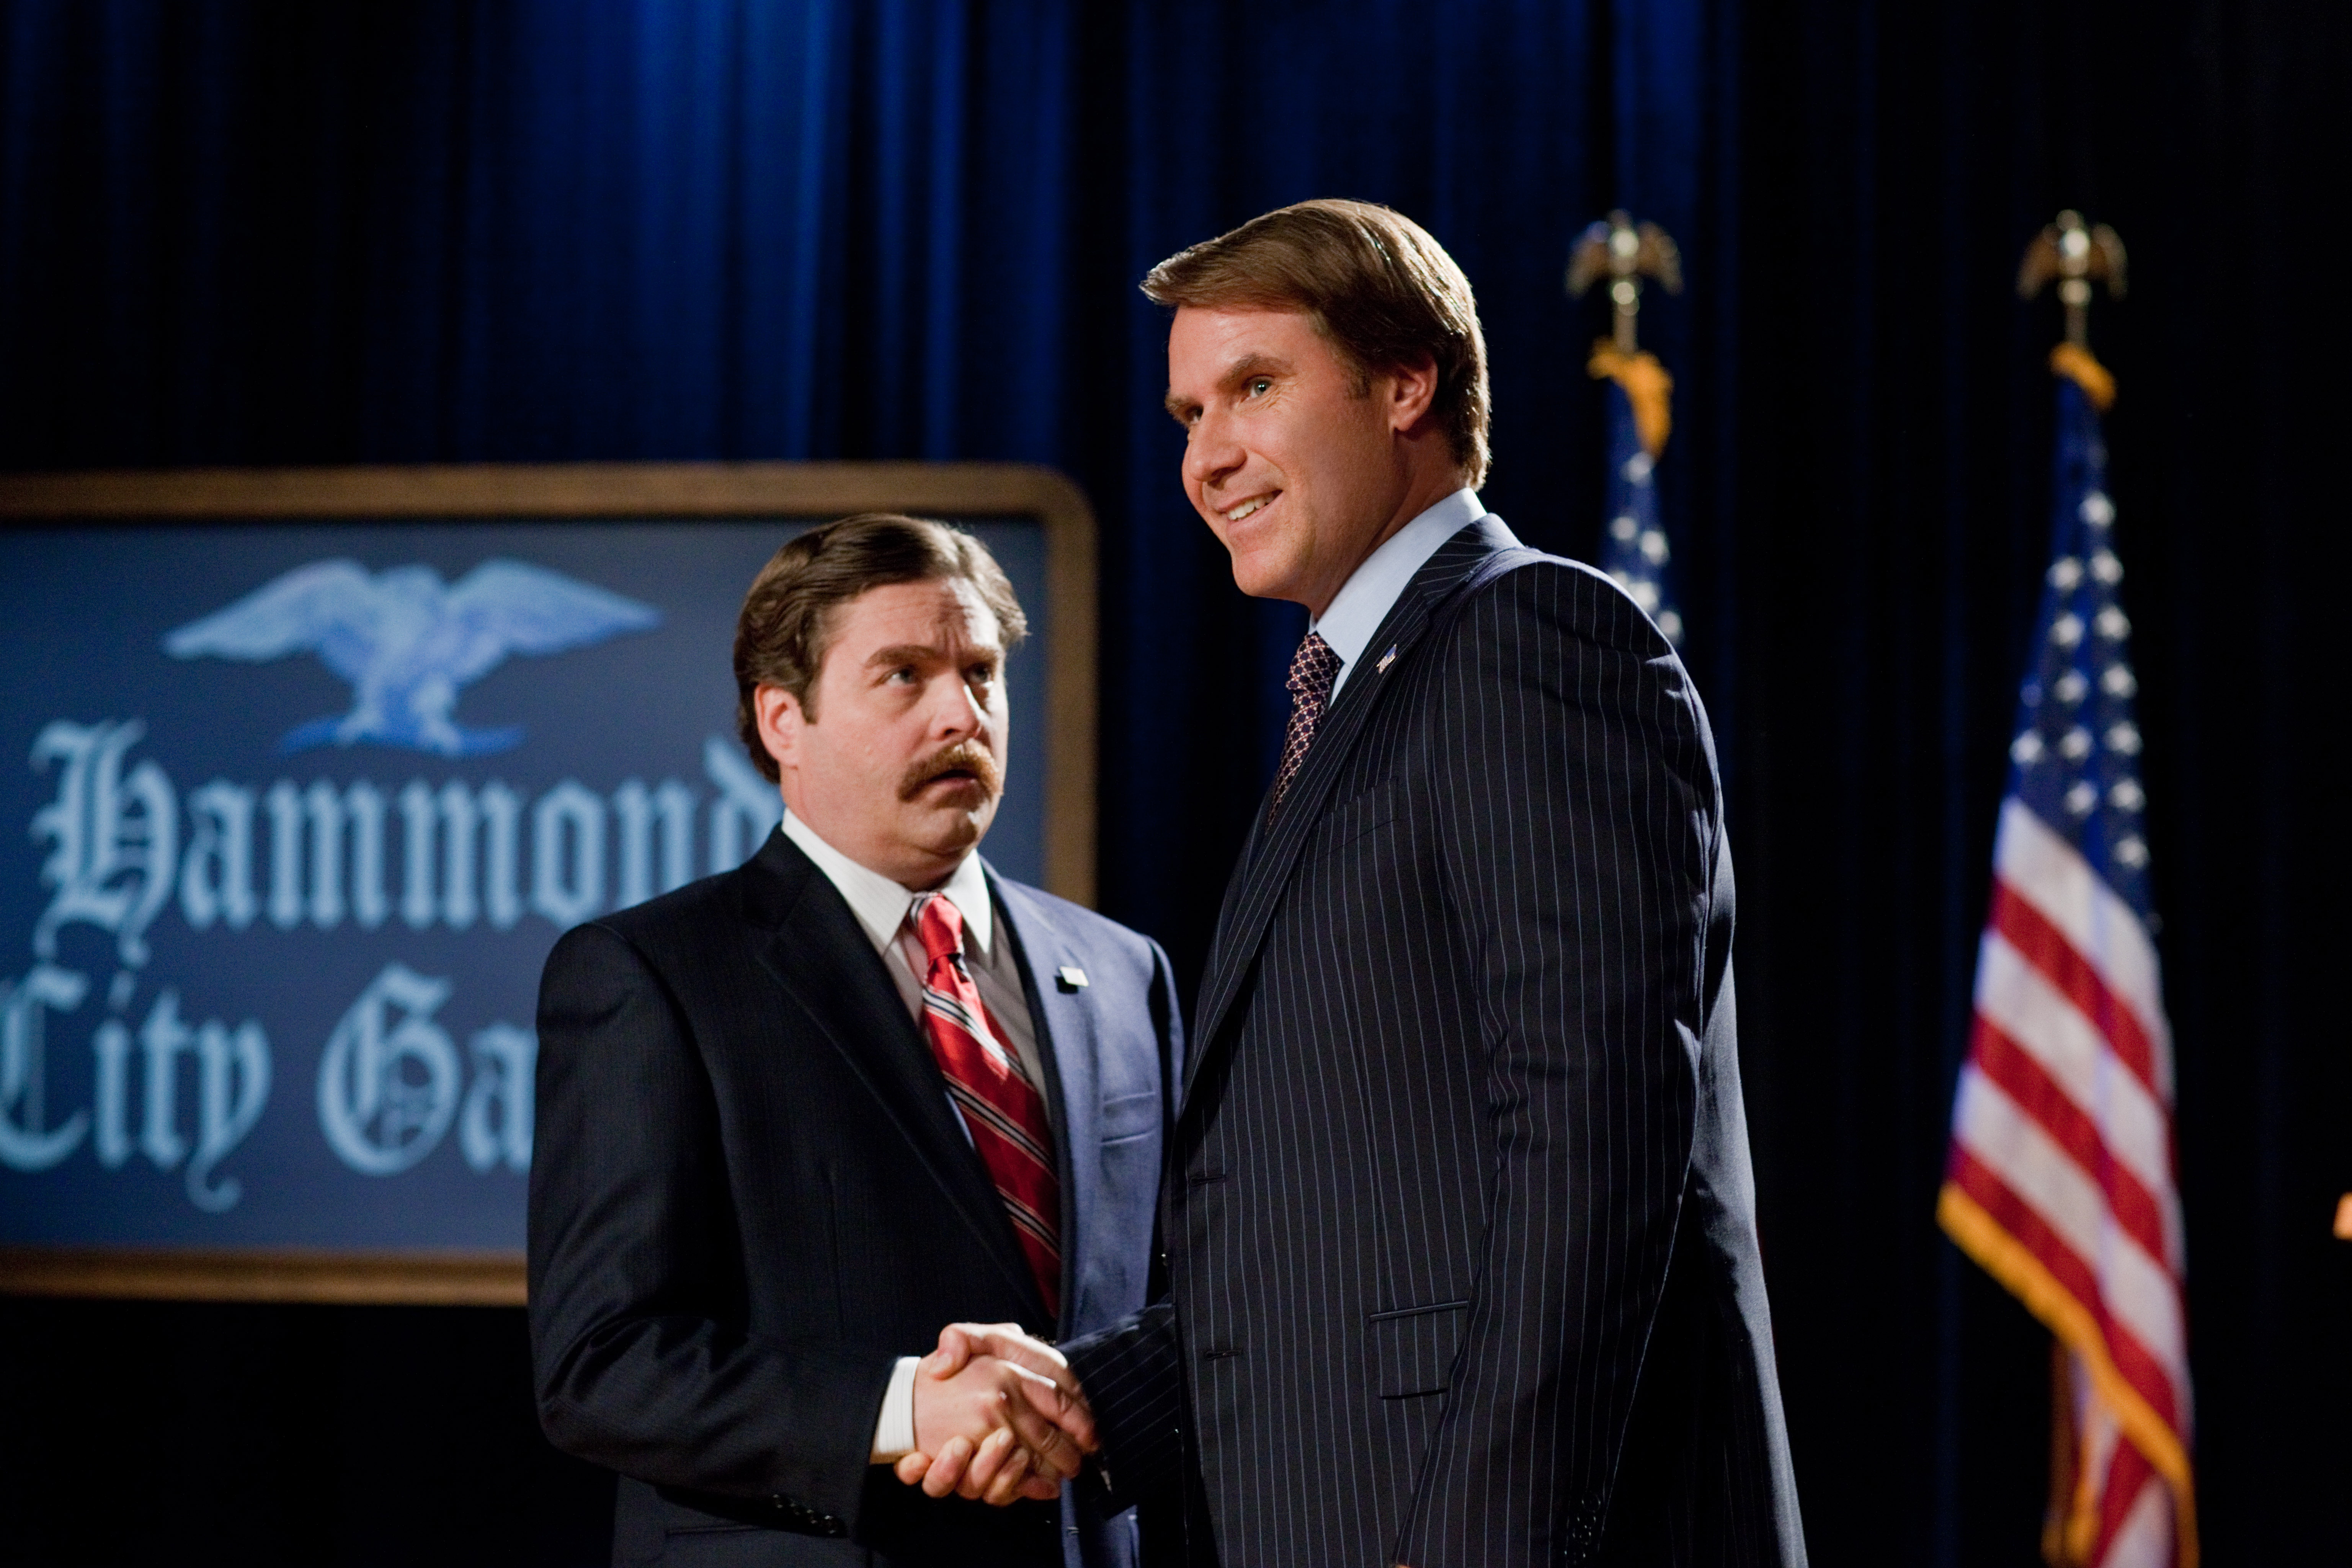 'The Campaign' (Jay Roach, 2012)